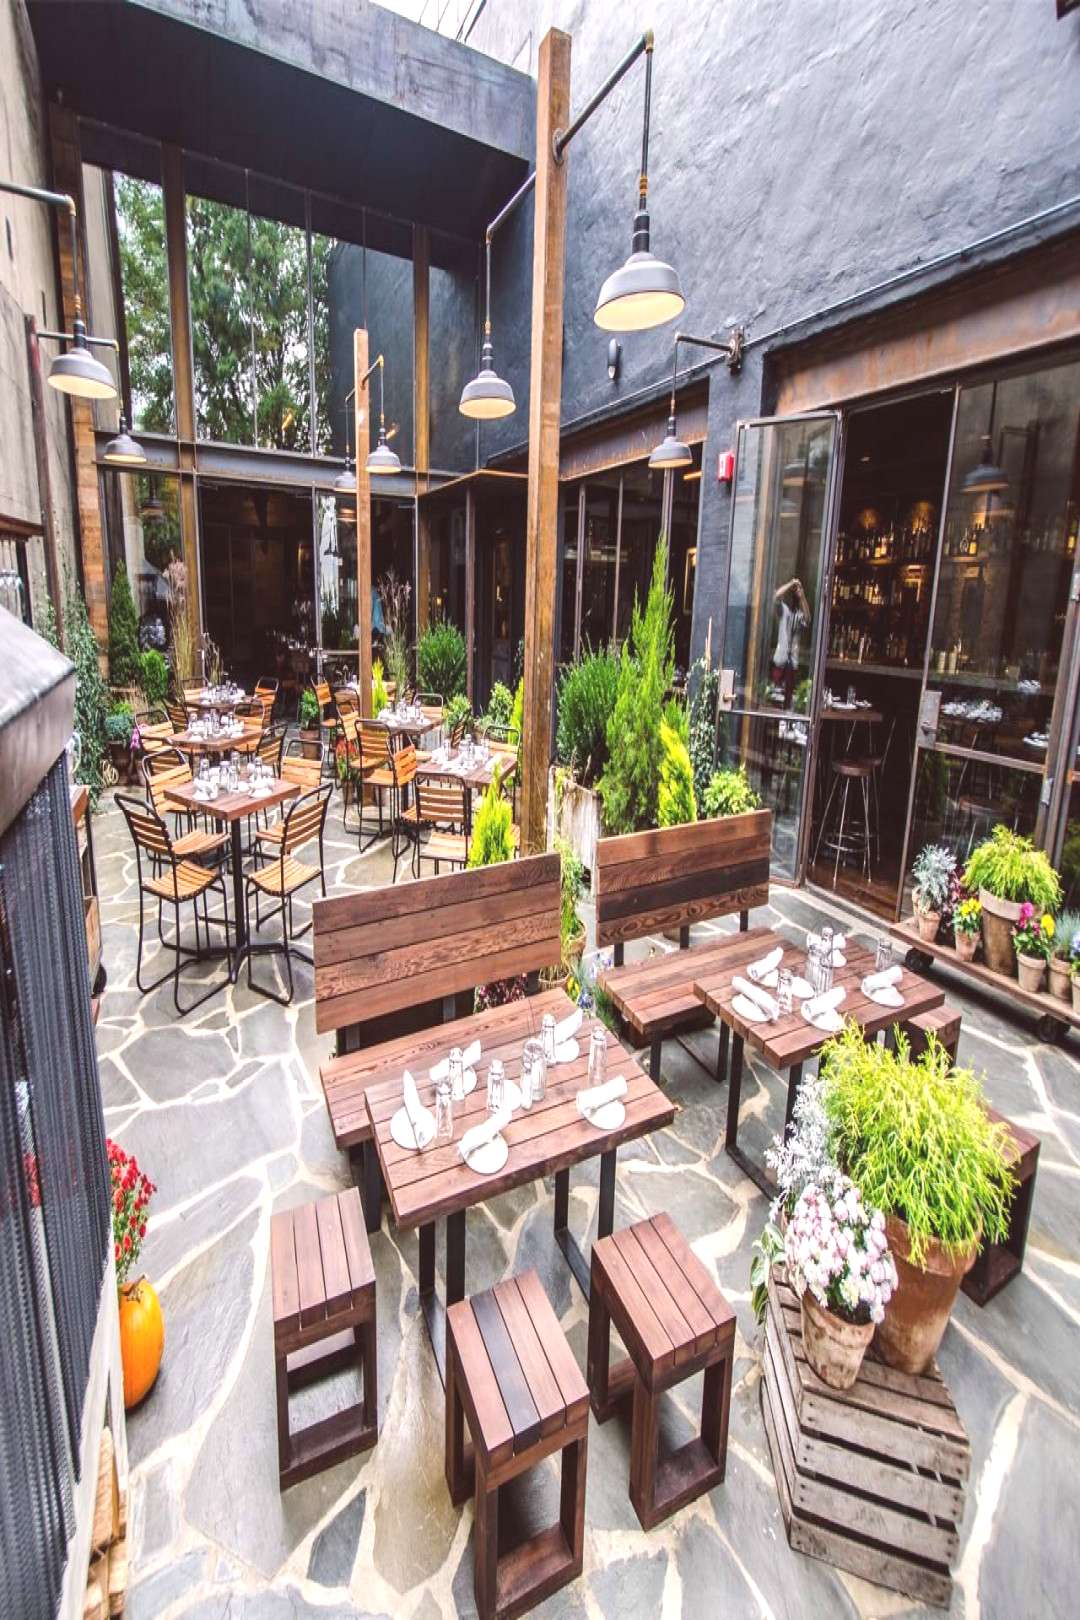 75 reference of outdoor patio restaurants sacramento outdoor patio restaurants sacramento-#outdoor